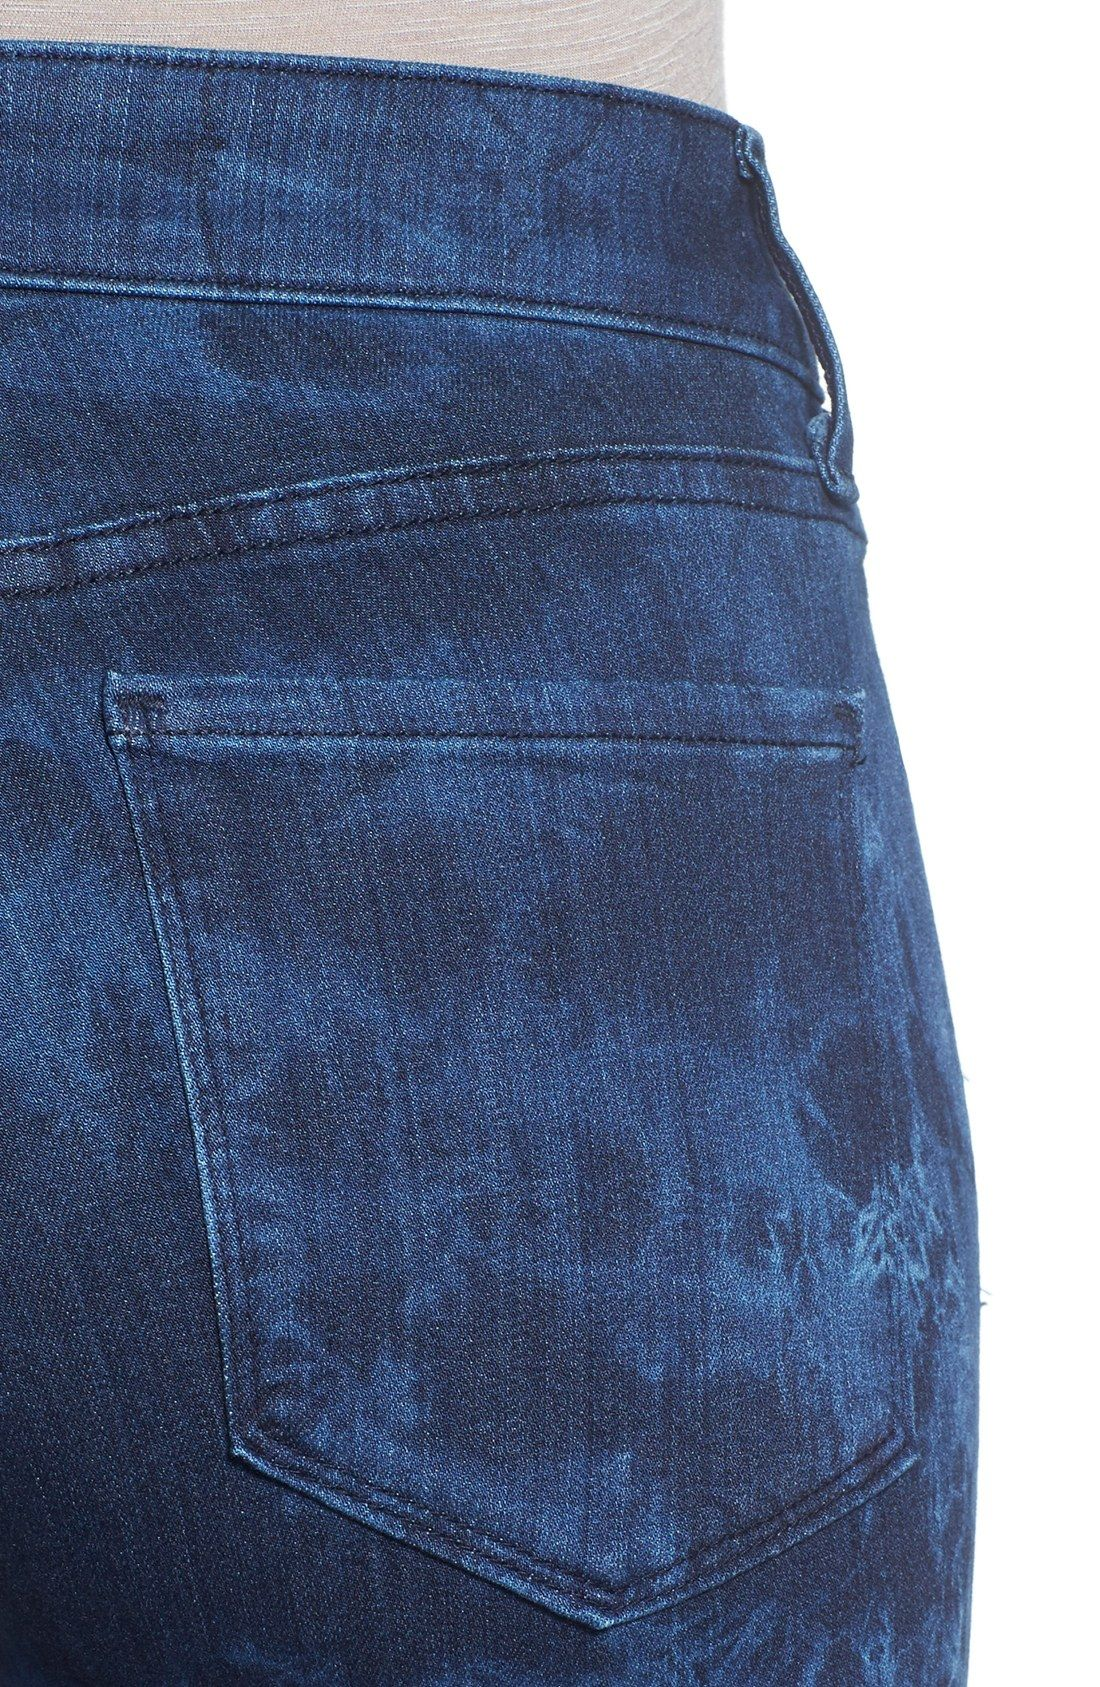 Free shipping and returns on NYDJ 'Alina' Tie Dye Stretch Skinny Jeans at Nordstrom.com. Stretchy curve-hugging jeans take on a sense of intrigue in a richly saturated, indigo tie-dye print. As always, they are designed with exclusive lift-tuck technology that helps to shape and smooth from within.